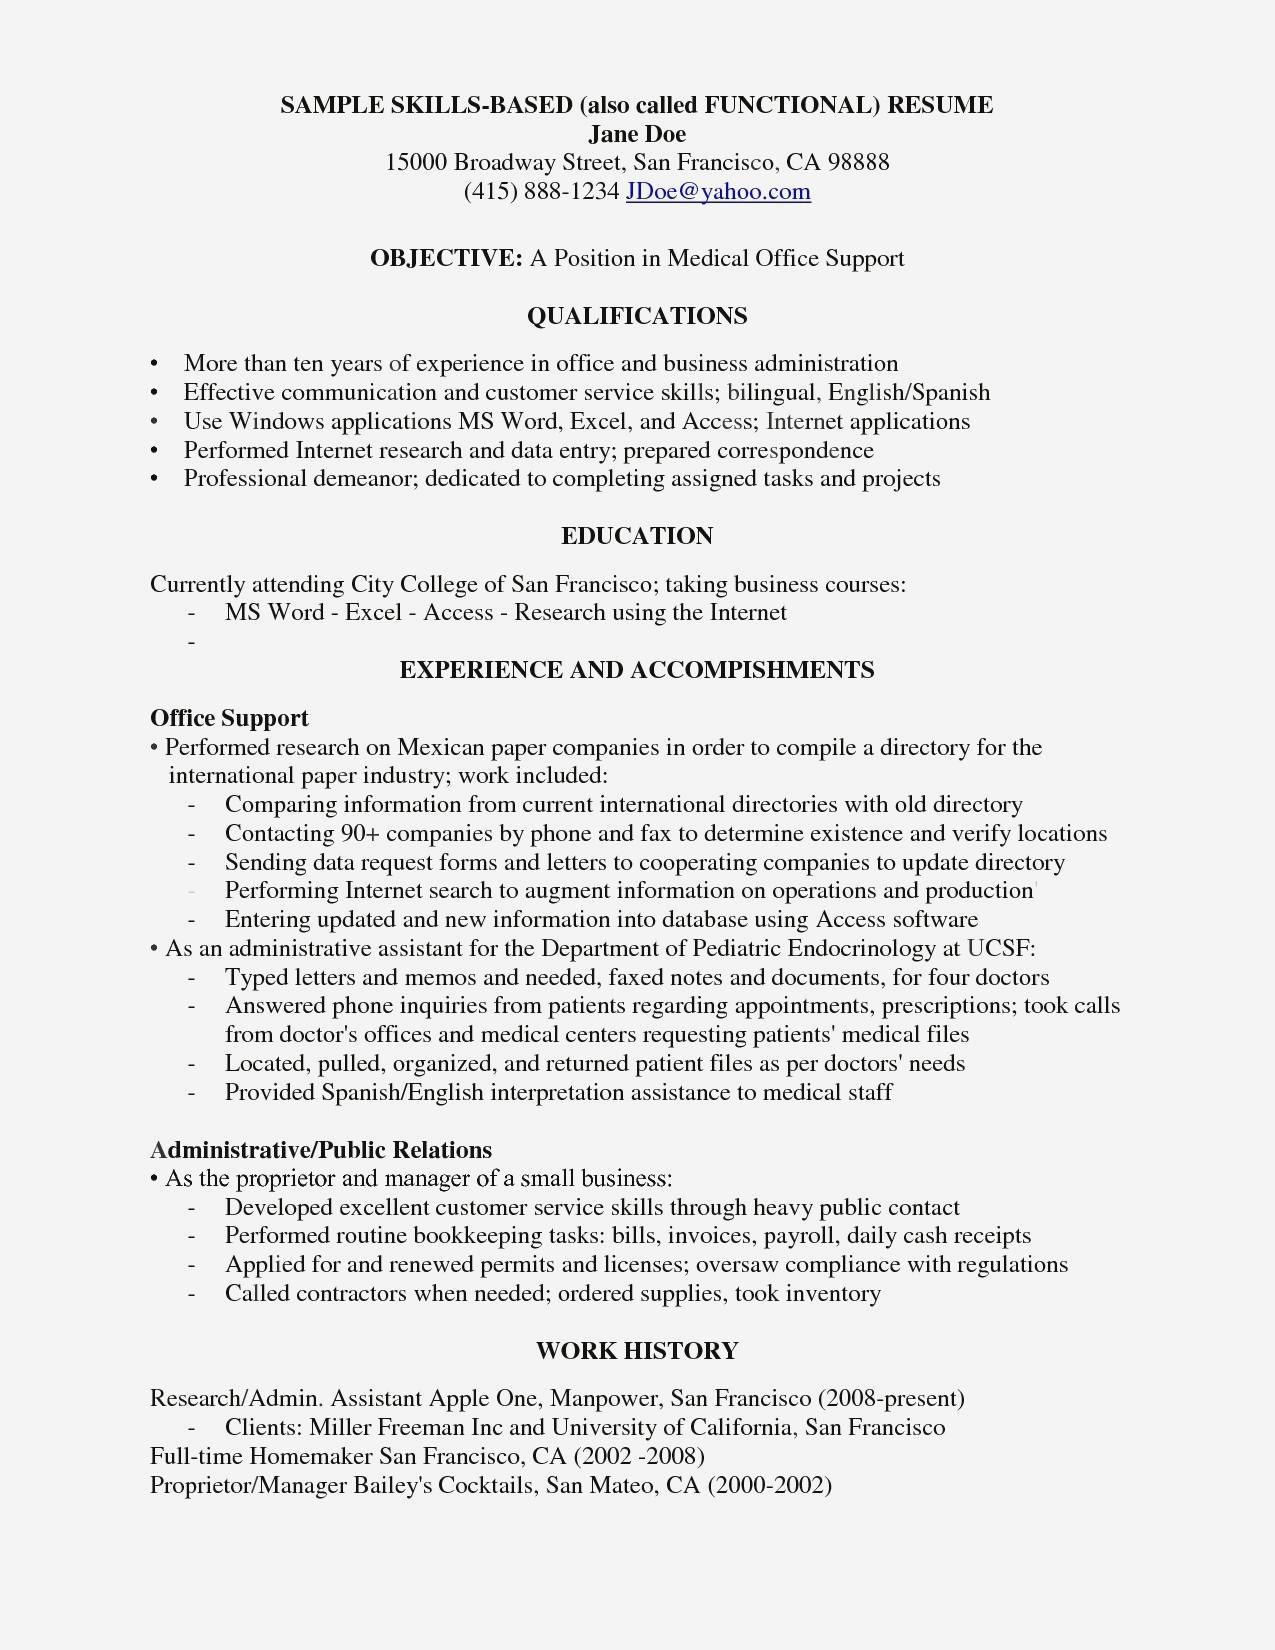 Bookkeeping Duties for Resume - 14 Typical Warehouse Duties Resume Sierra Image Cv Word original